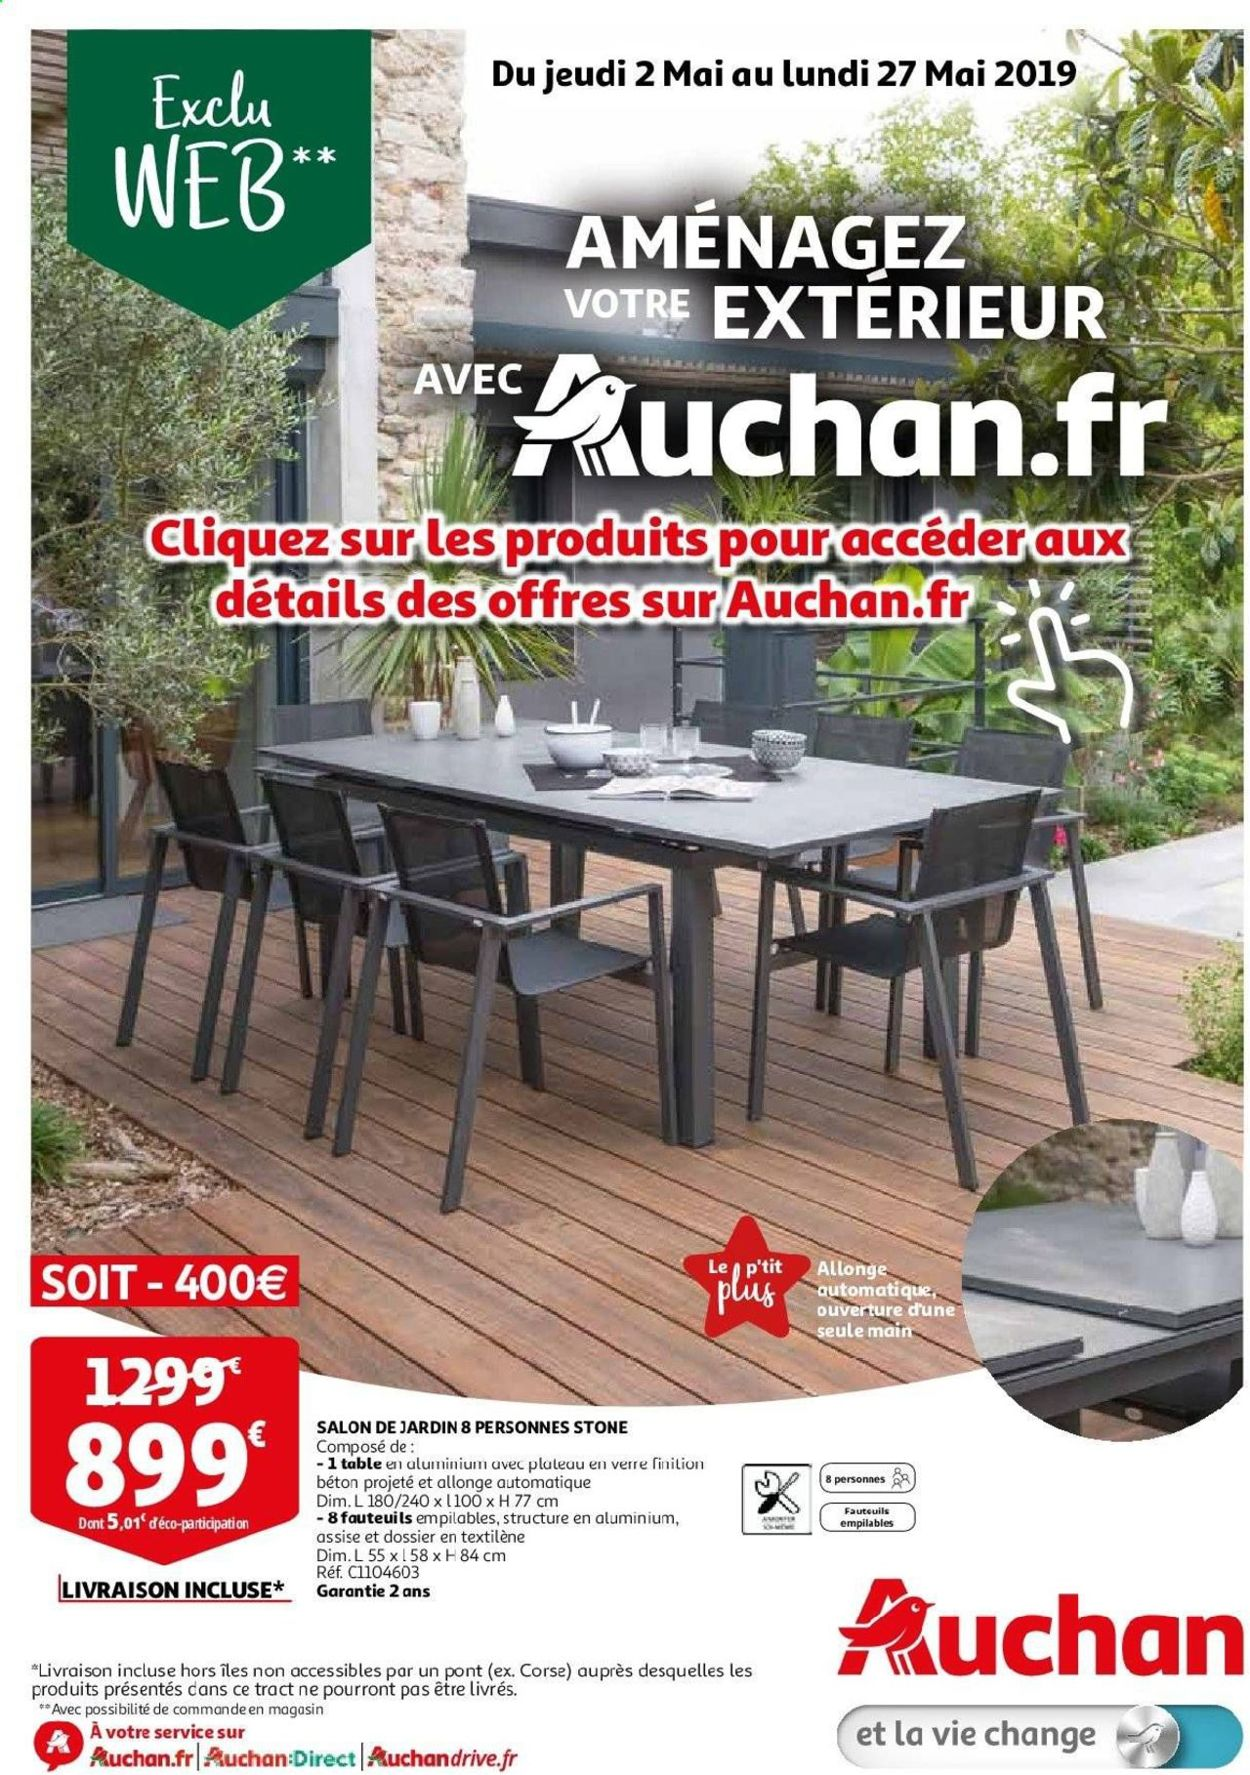 Auchan Catalogue - 02.05-27.05.2019